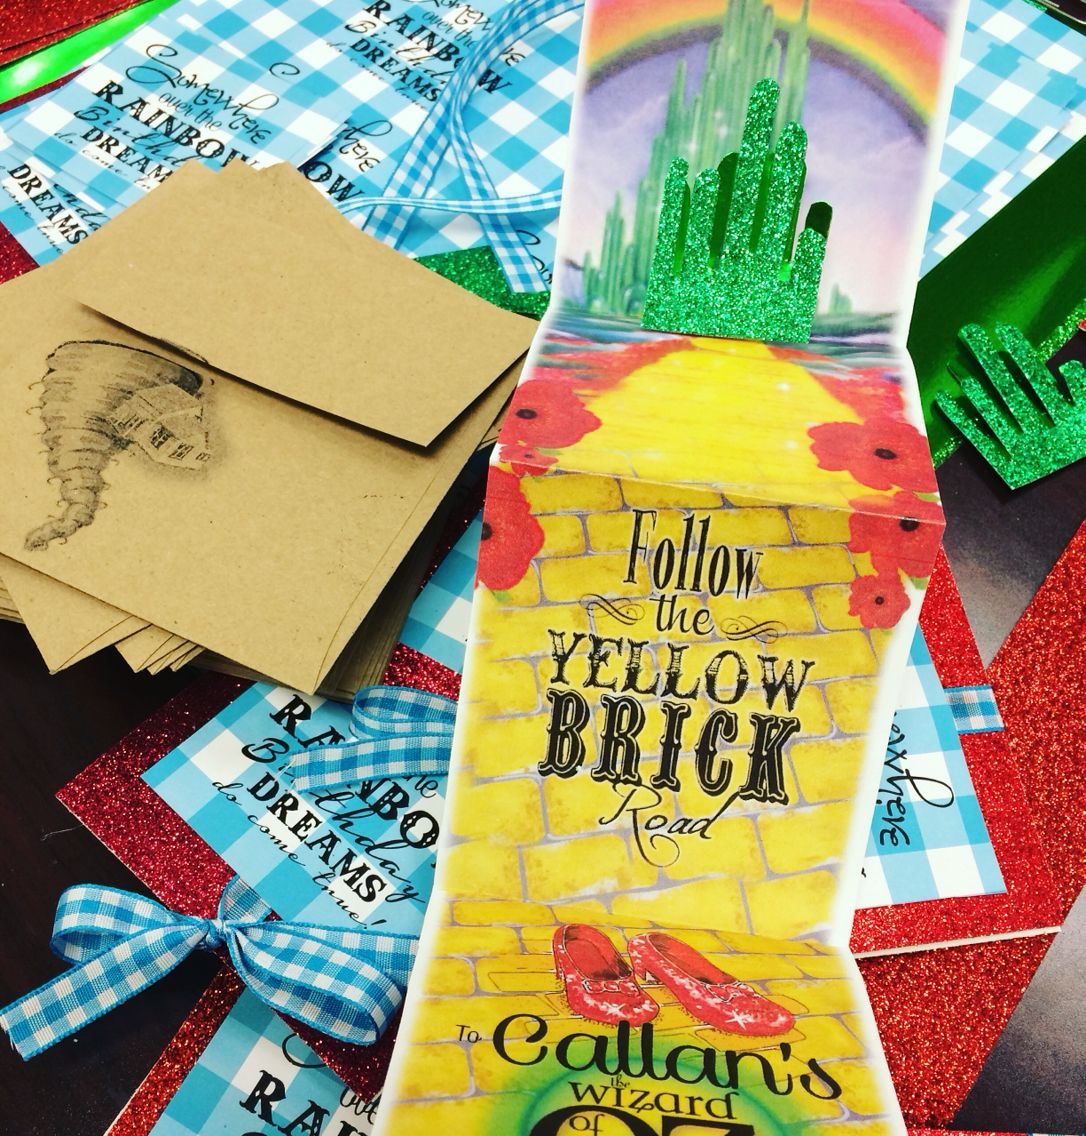 Wizard of OZ birthday party invitations fold out yellow brick road